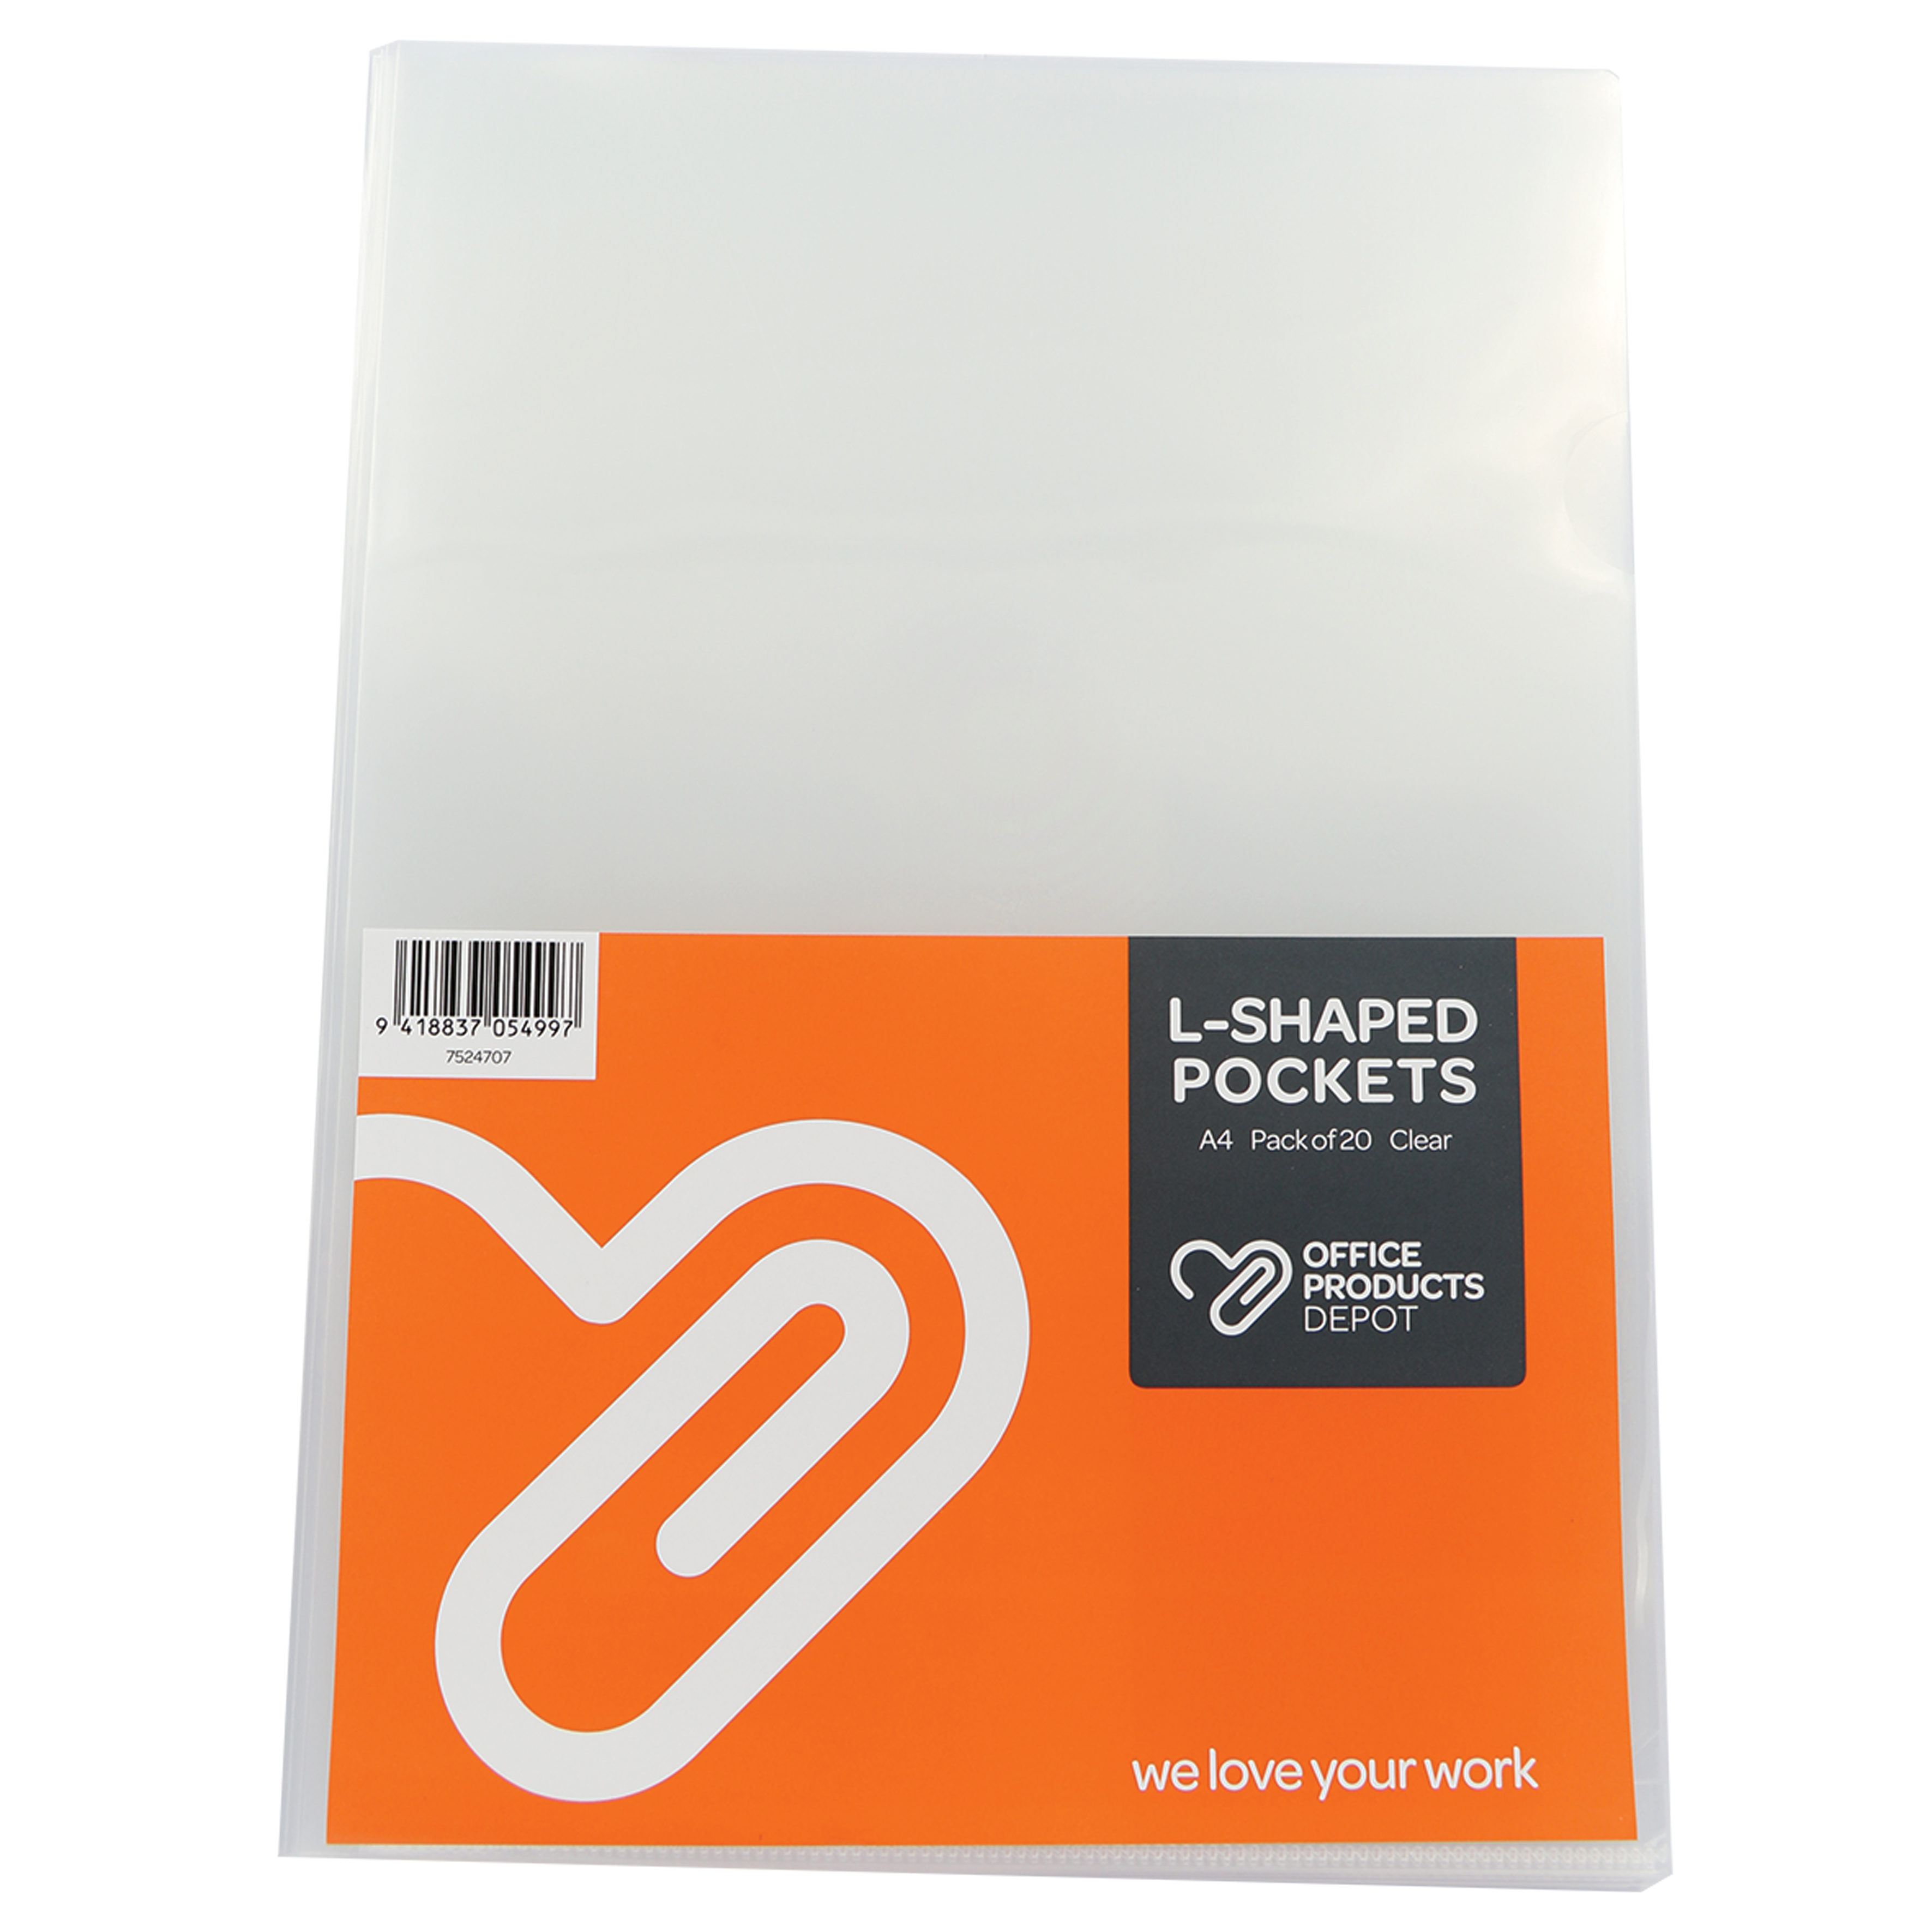 Image for OPD OFFICEWARE L-SHAPED POCKET A4 CLEAR PACK 20 from Southern Office Products Depot